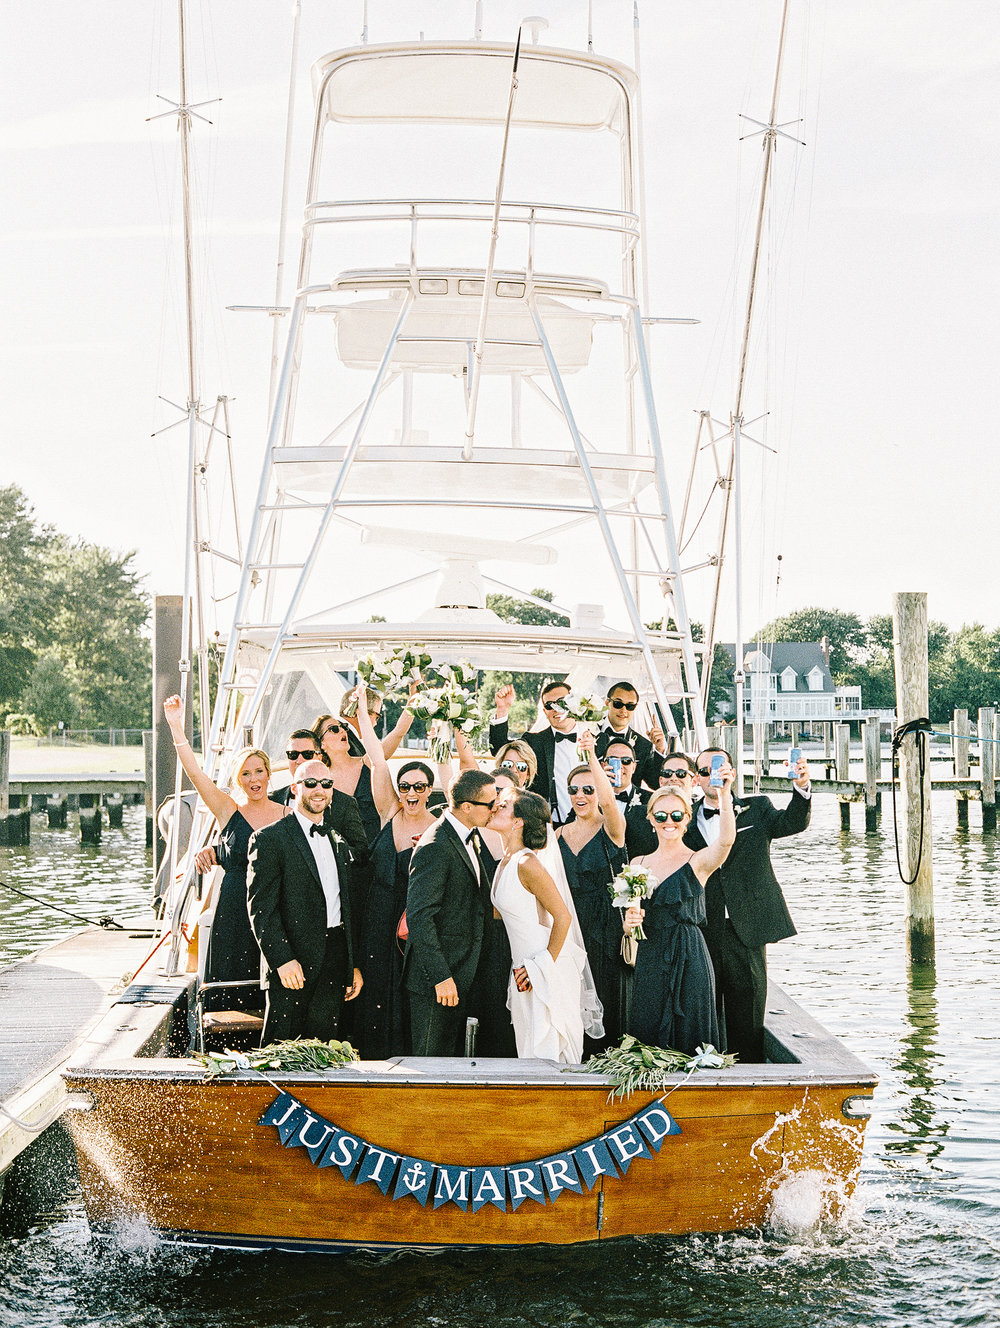 katie stoops photography-solomans island wedding37.jpg